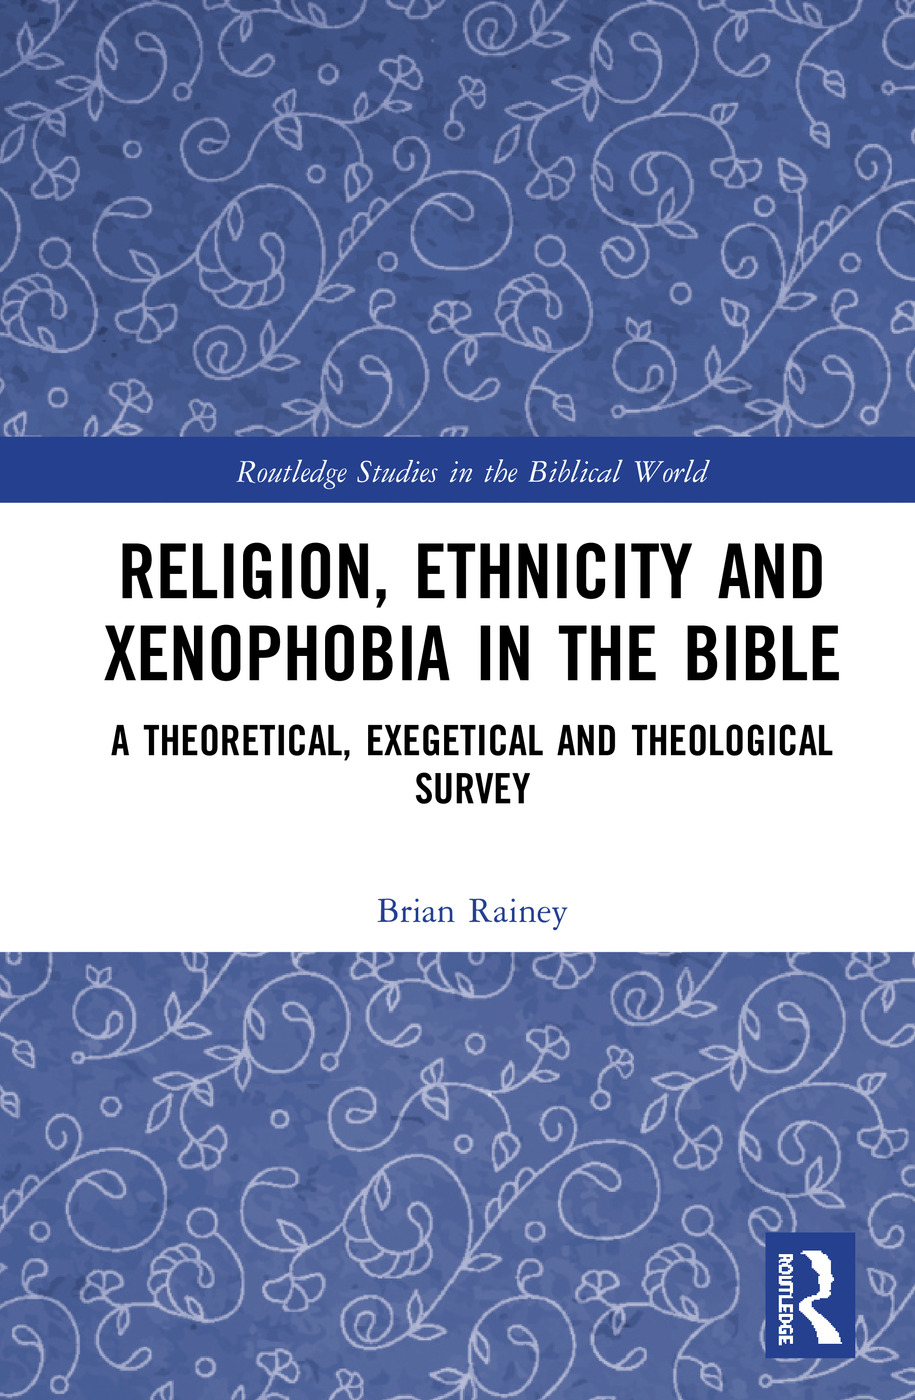 Religion, Ethnicity and Xenophobia in the Bible: A Theoretical, Exegetical and Theological Survey book cover